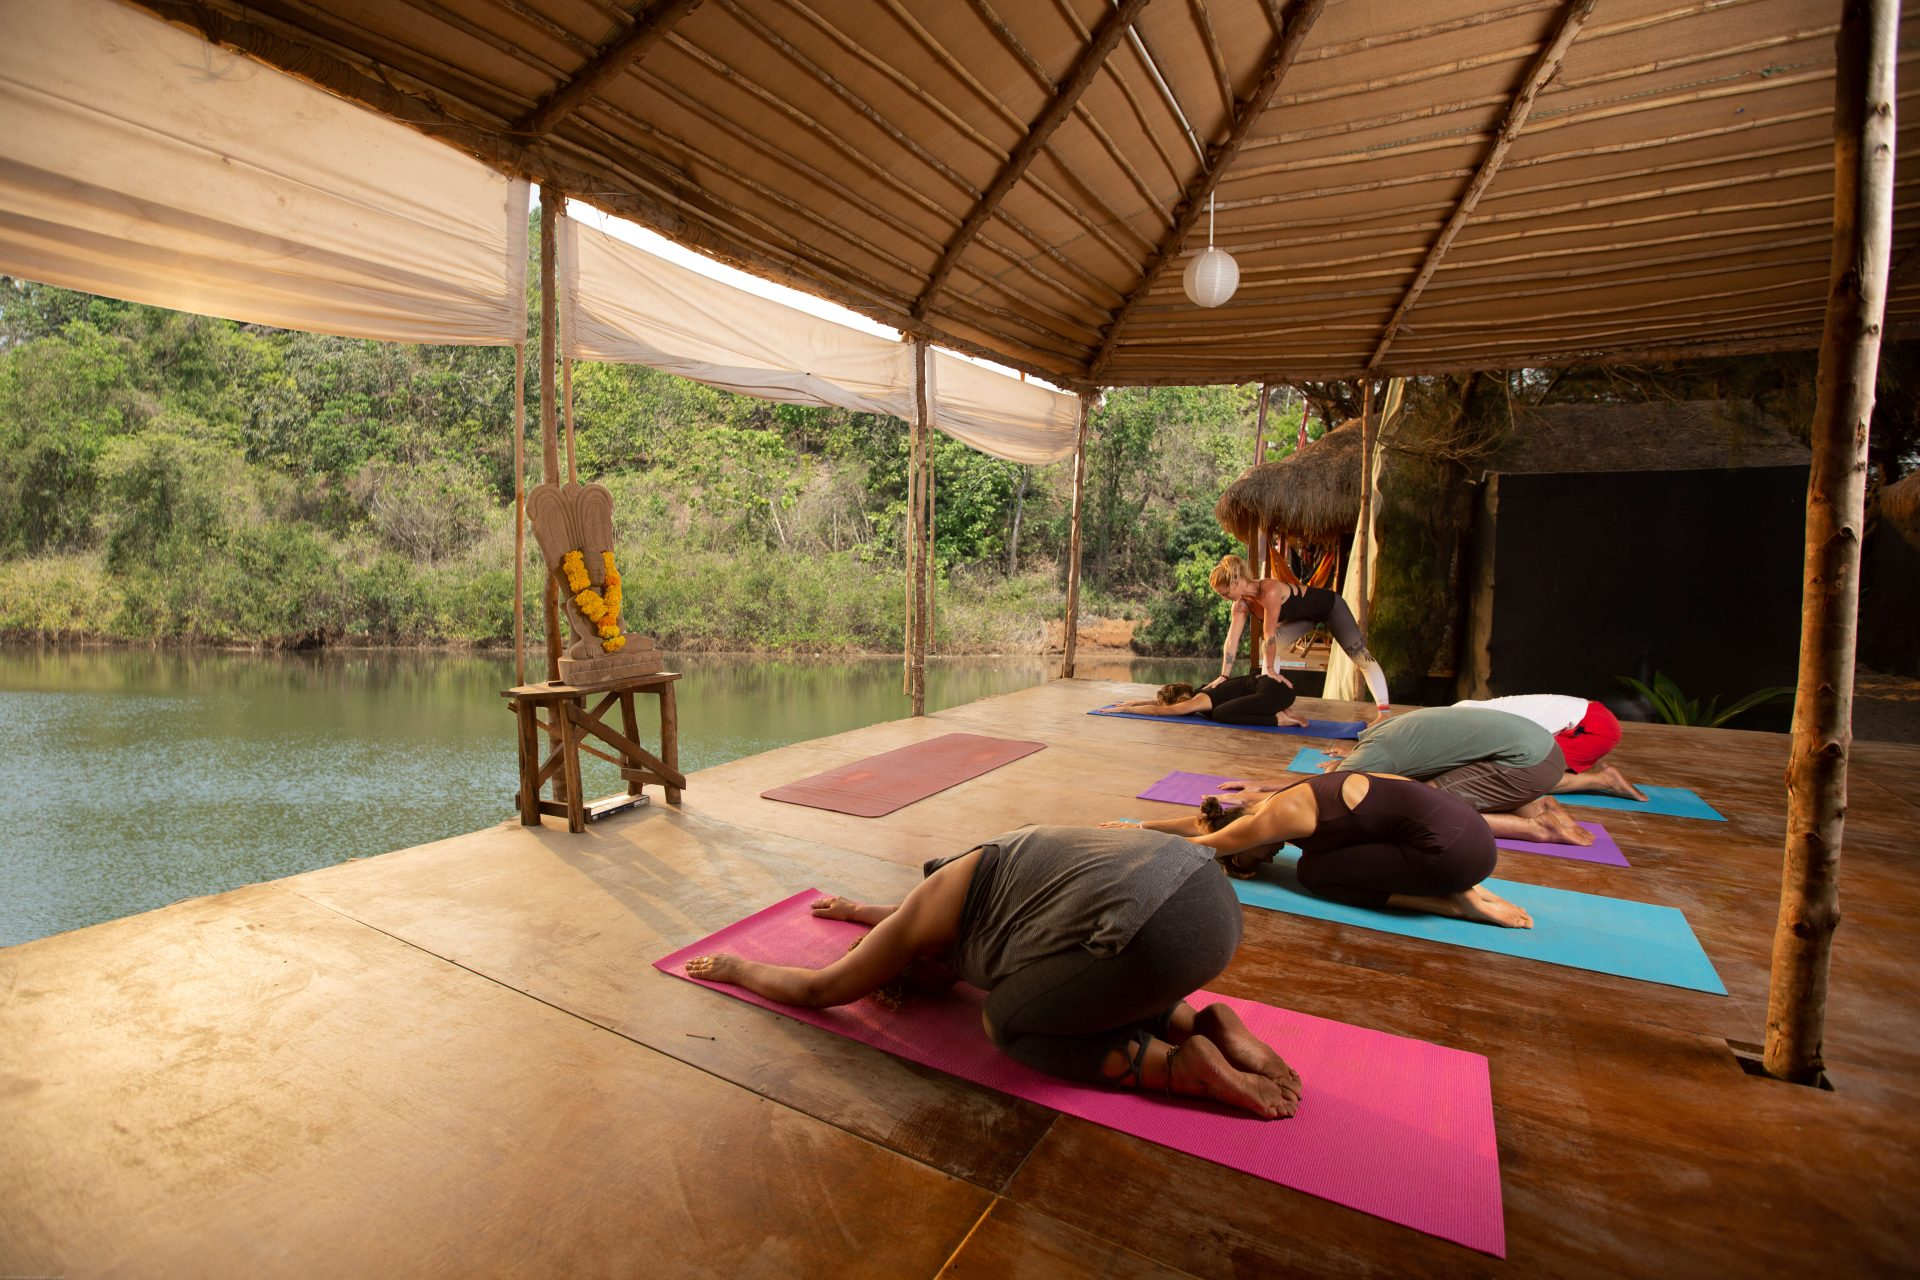 bamboo-yoga-river-class-childspose